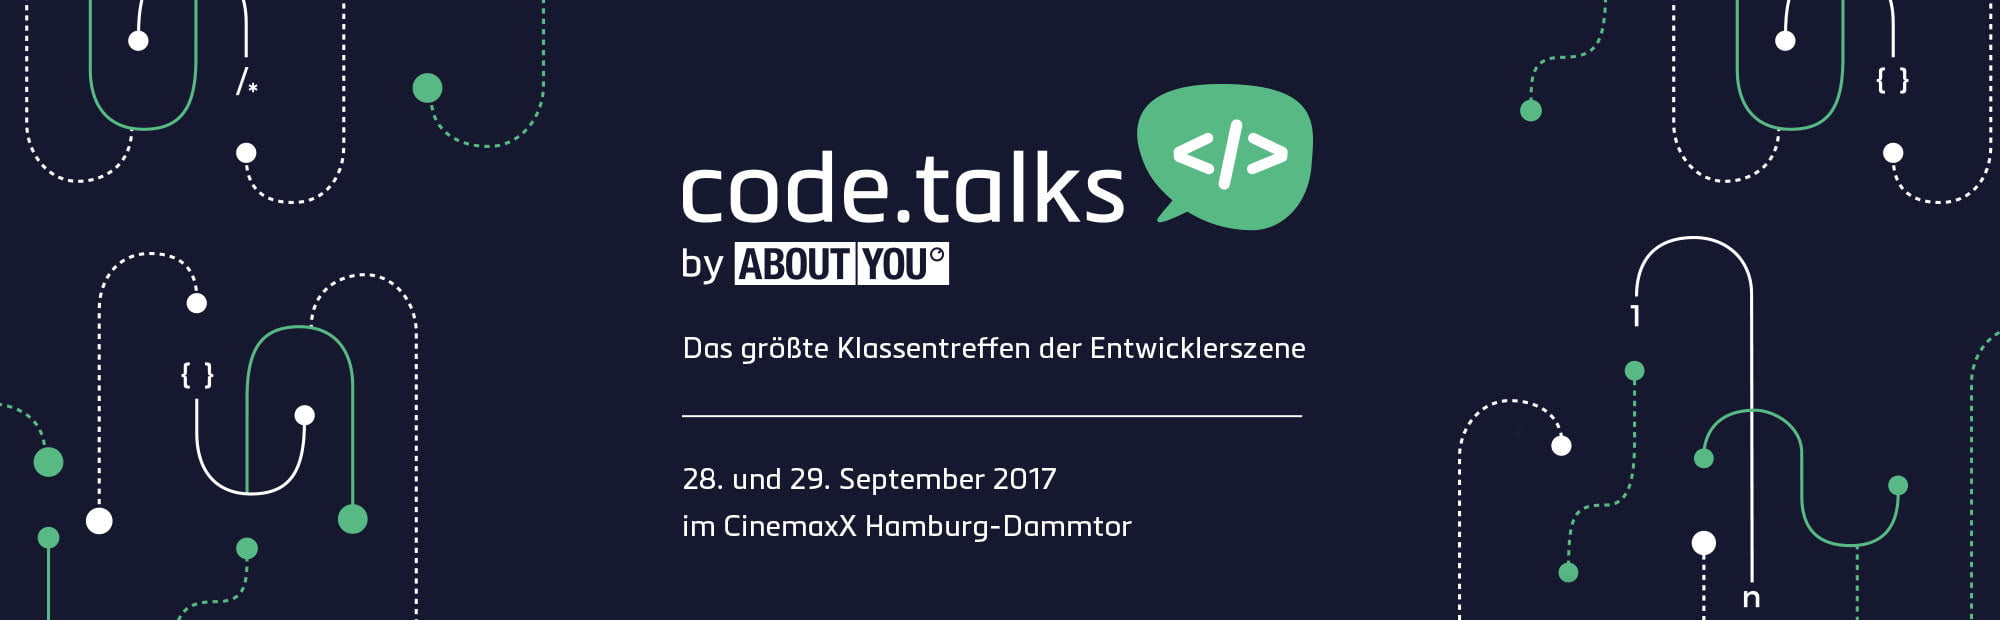 GROUPLINK auf den code.talks